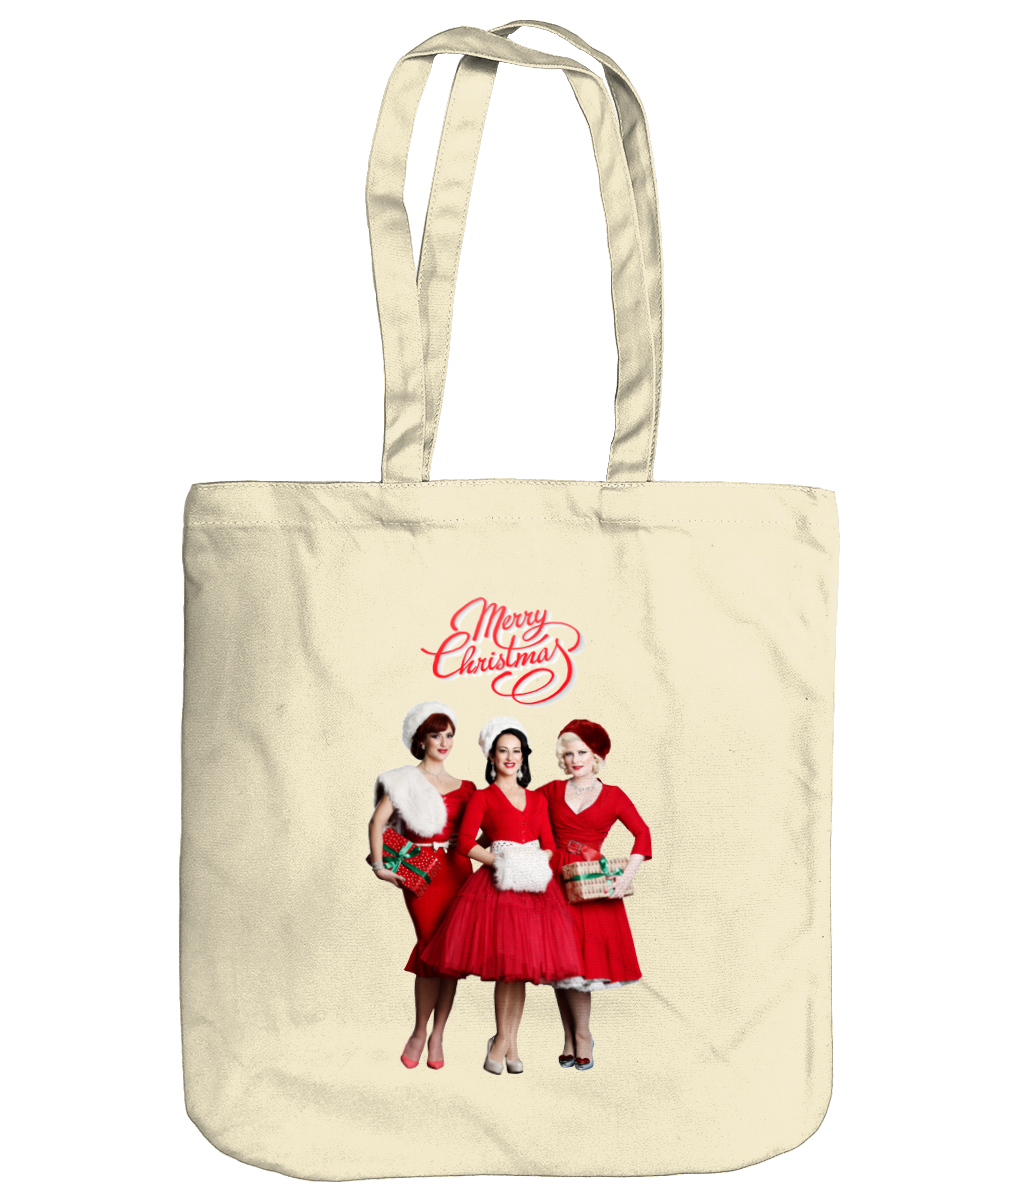 The Puppini Sisters Christmas Tote